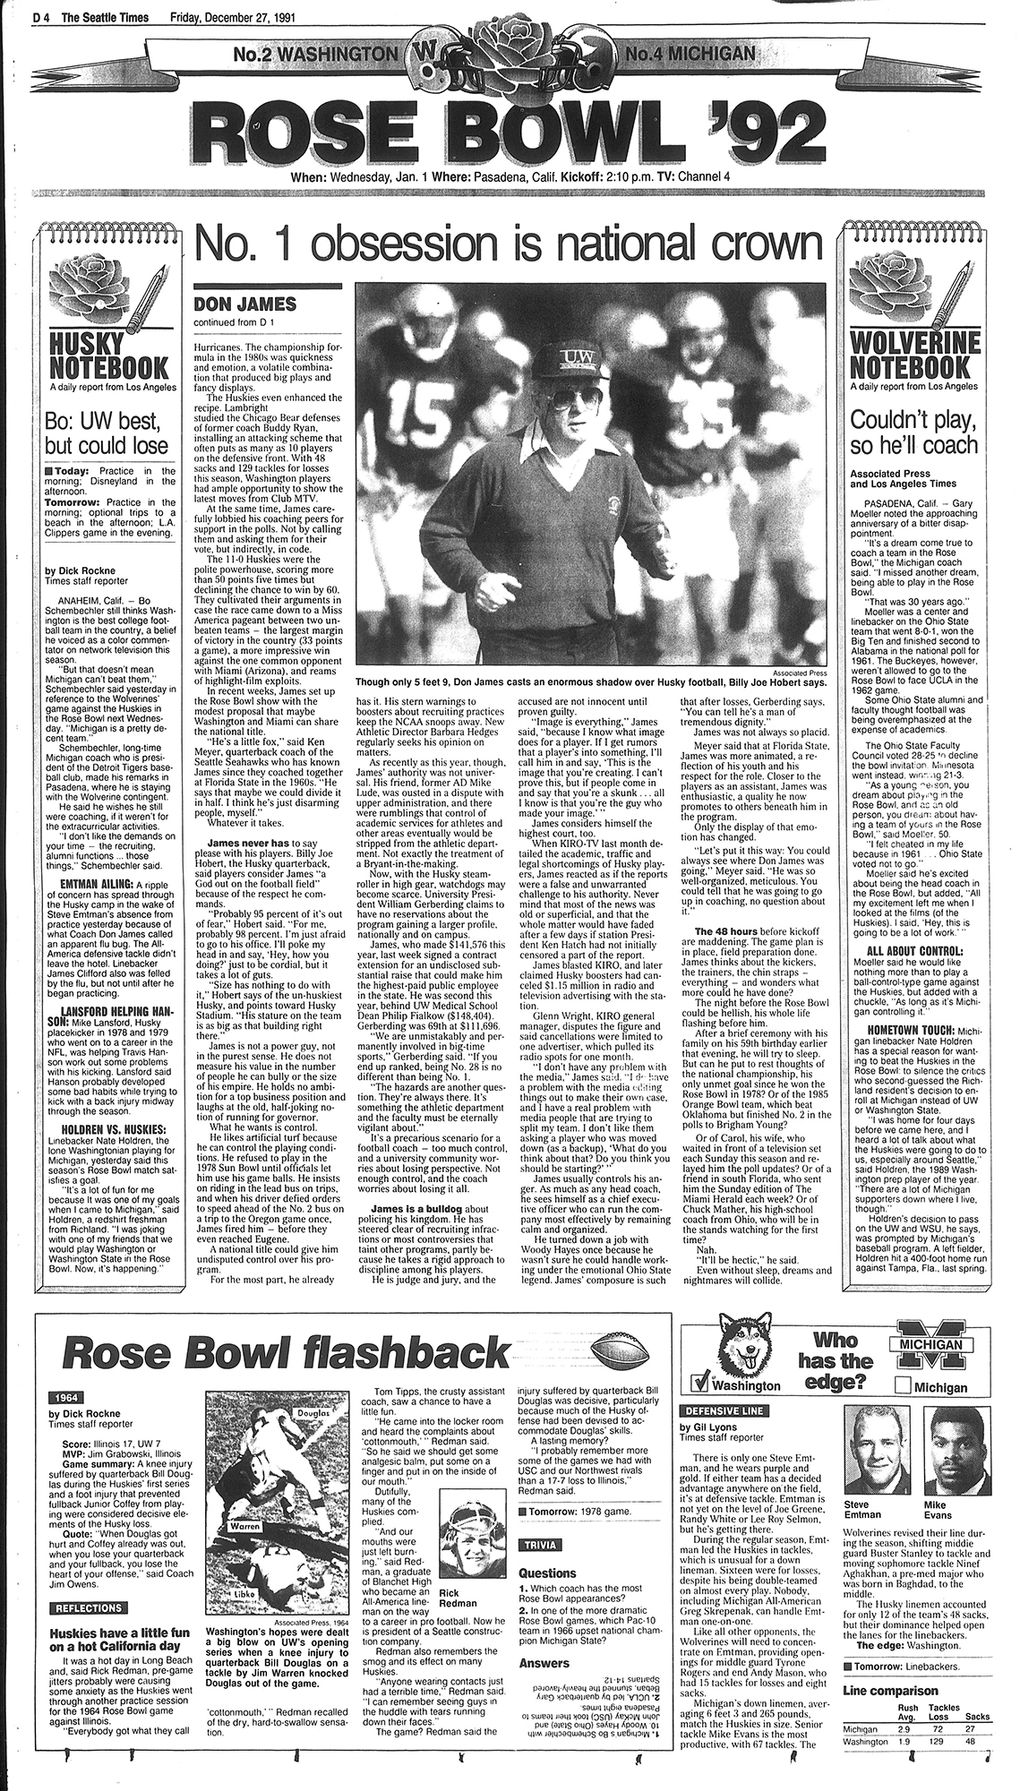 The Seattle Times D1 sports cover days before the 1991-92 Rose Bowl. (Seattle Times archives)